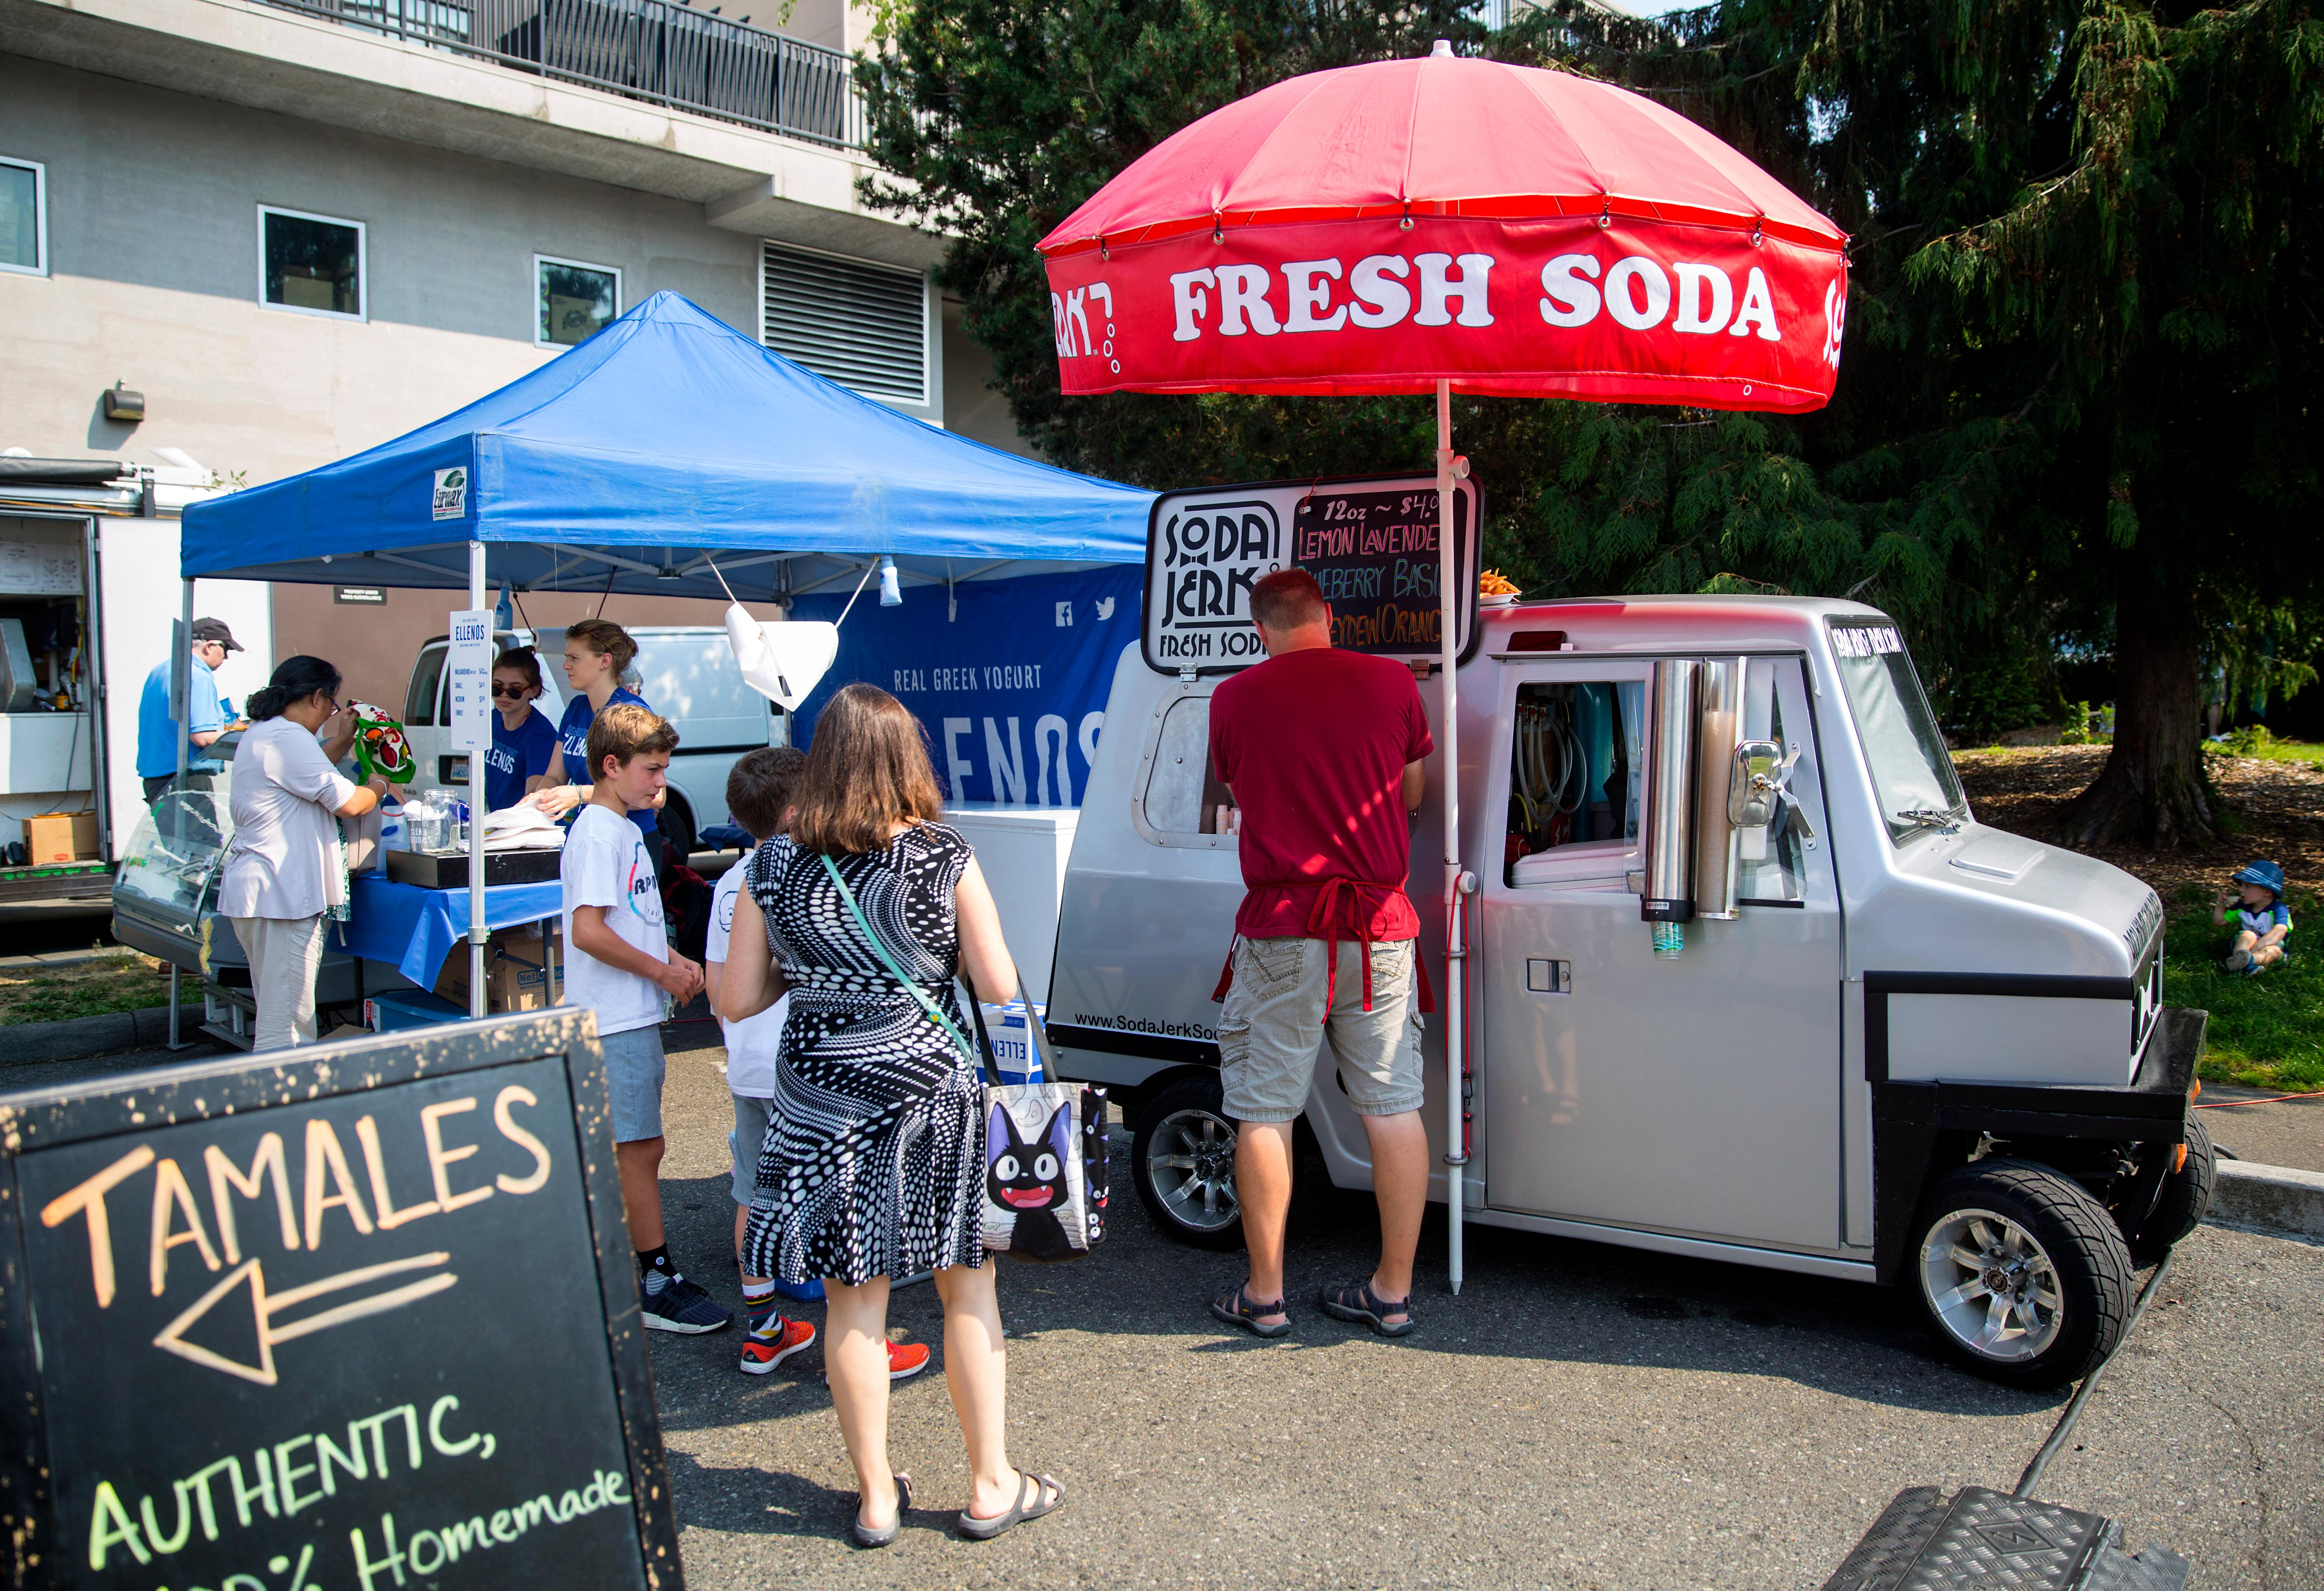 Soda Jerk ditches the sugary syrups, making soda from fresh ingredients like real fruit and natural cane sugar, and proudly displays the ingredients on the side of their truck. (Image: Sy Bean / Seattle Refined)